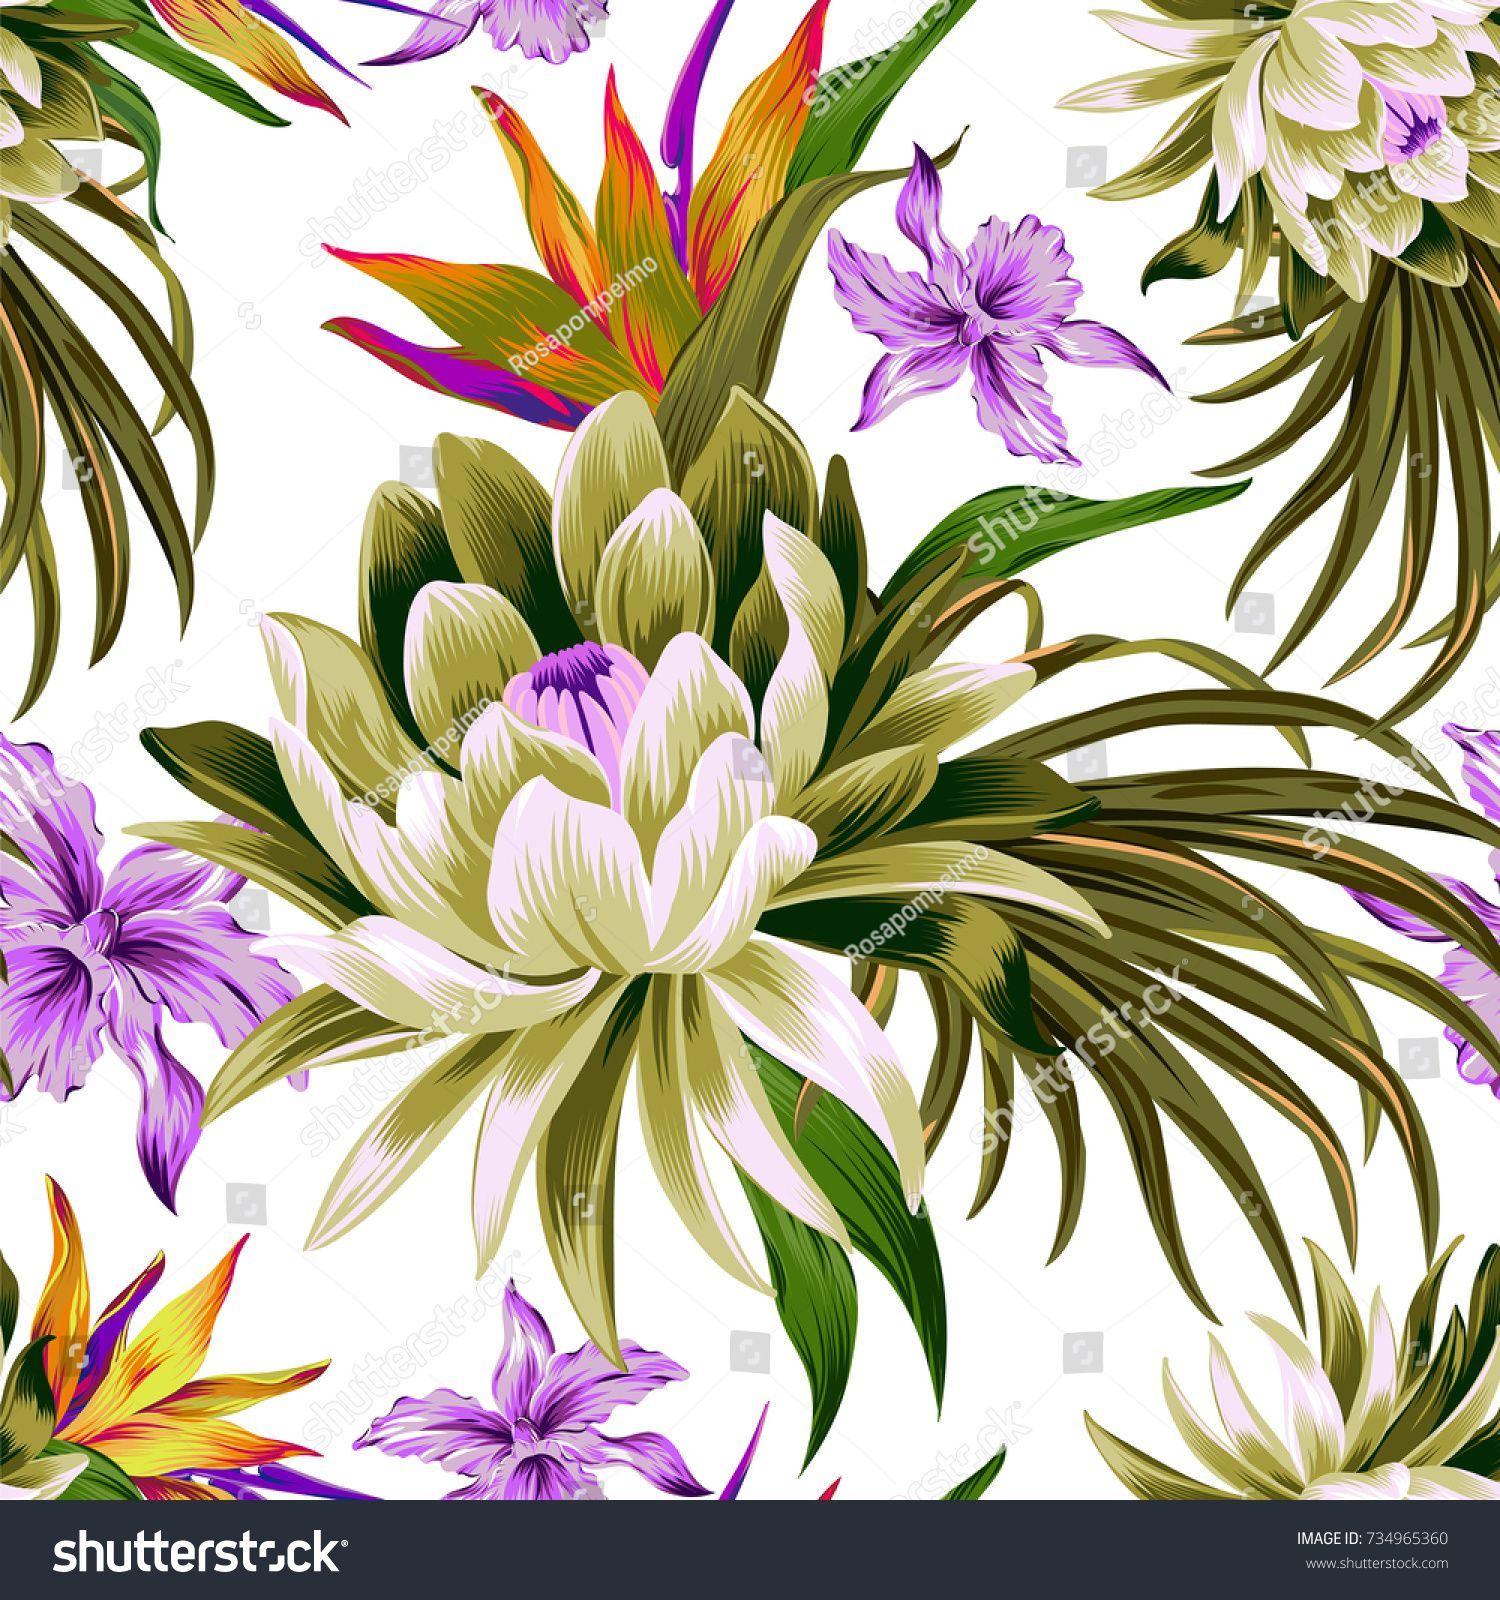 Rosapompelmo vector tropical pattern with waterlily, lotus